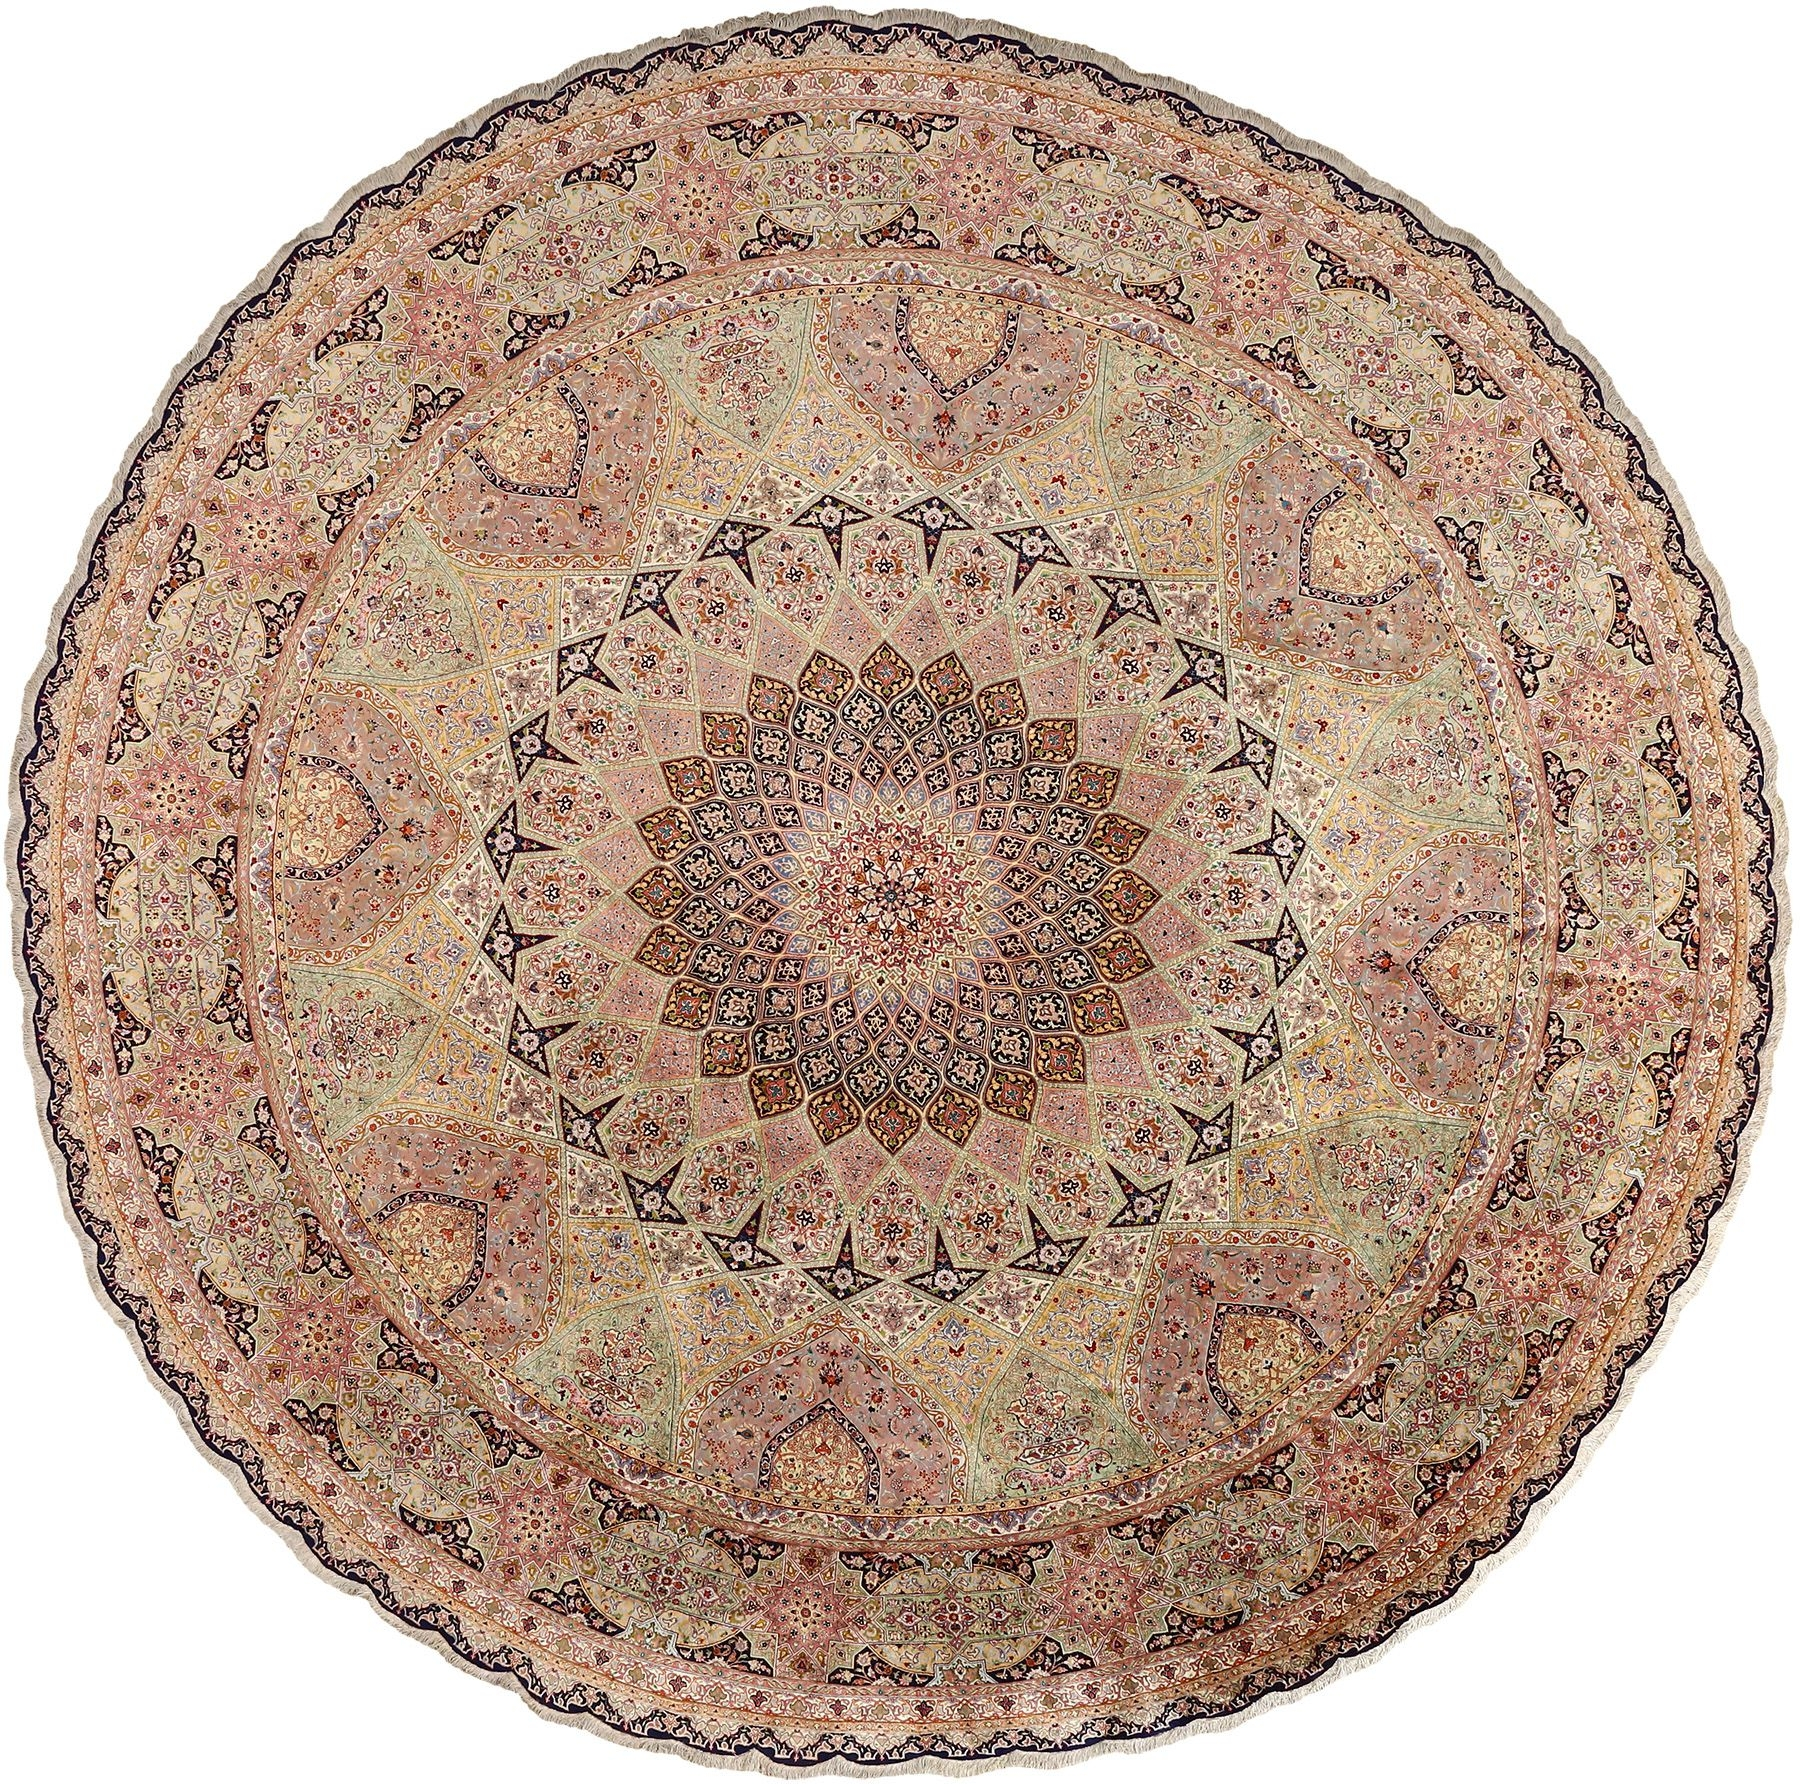 Intricate Round Tabriz Persian Rug 51137 Nazmiyal Throughout Round Persian Rugs (View 2 of 15)